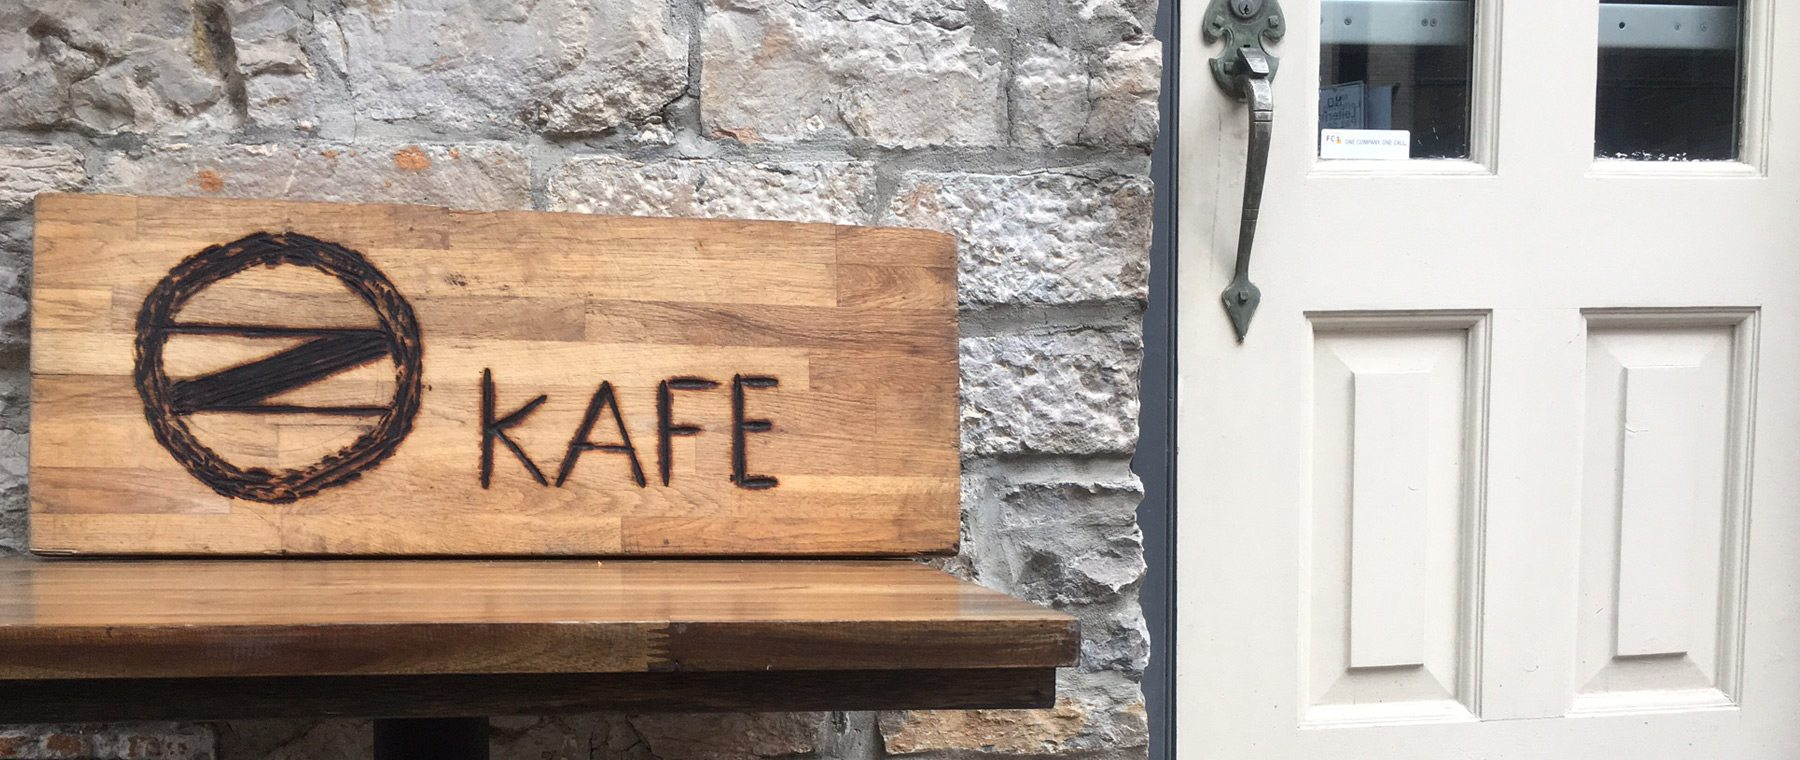 Return to Oz — Kafe re-opens in Market with triple the space, new chef, new menu